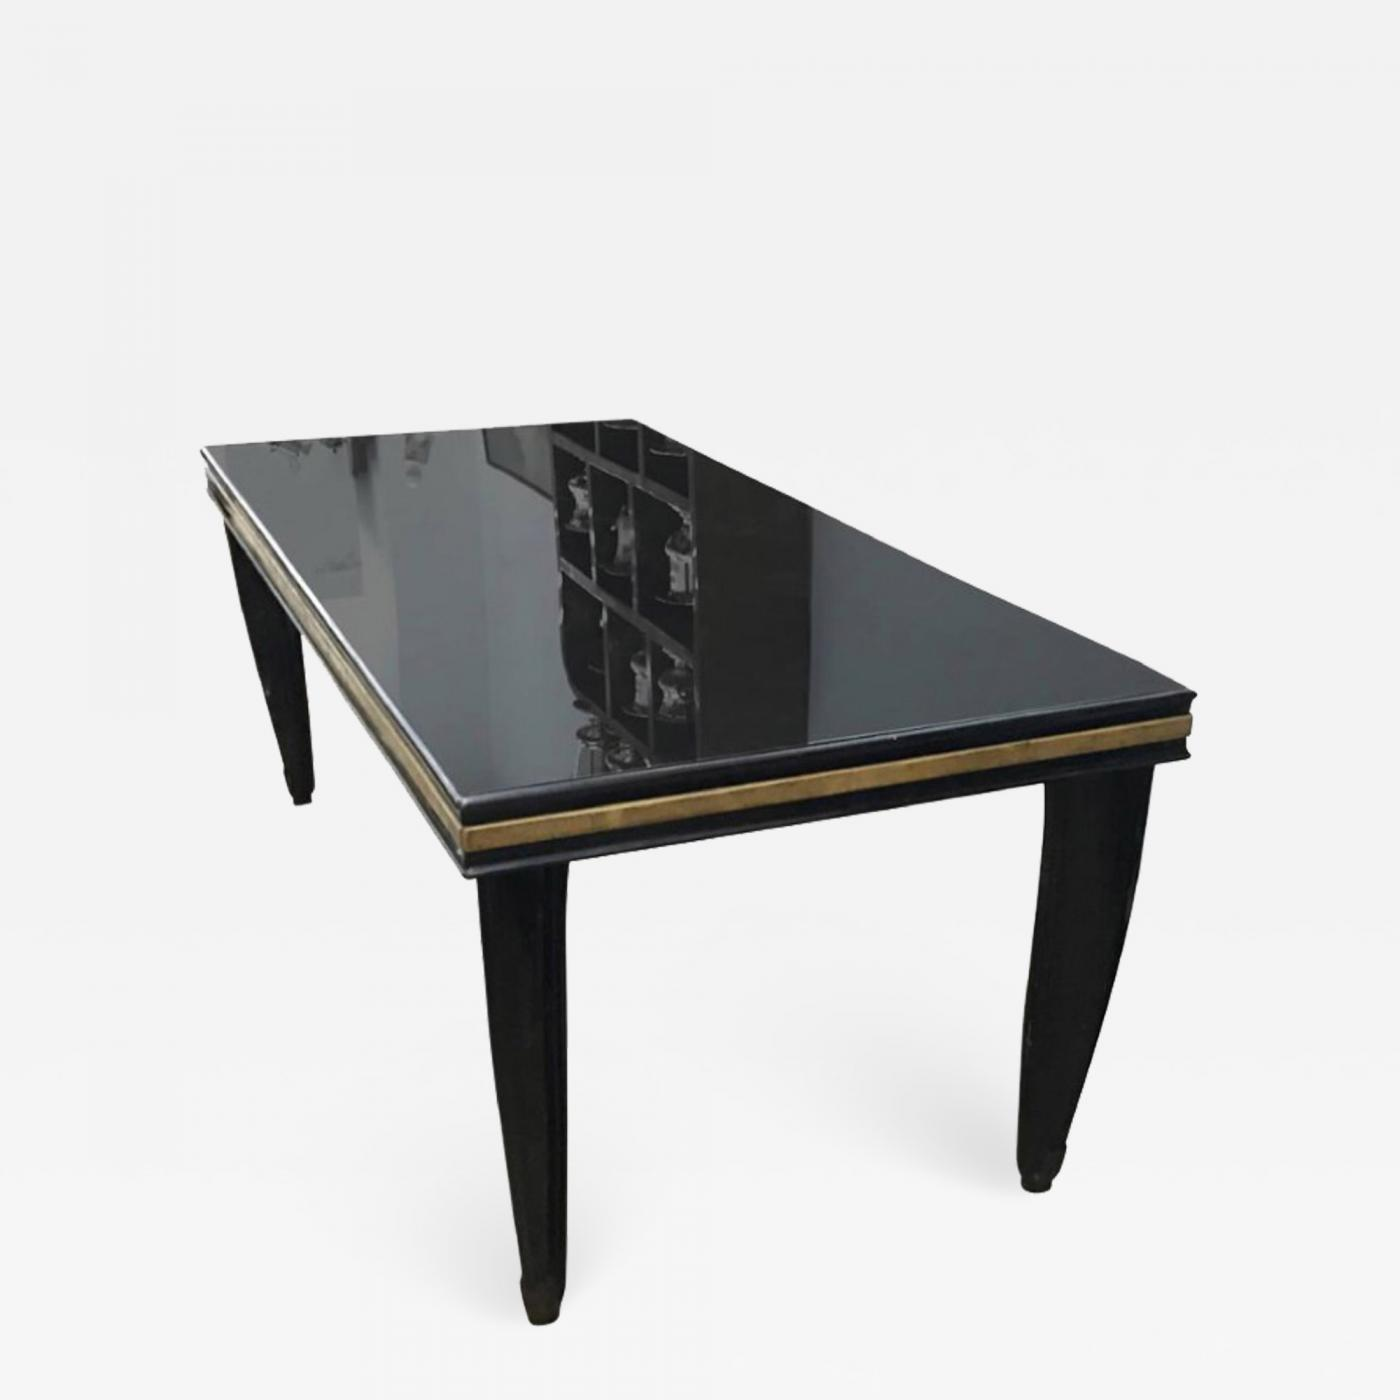 Listings Furniture Tables Dining Italian Art Deco Table